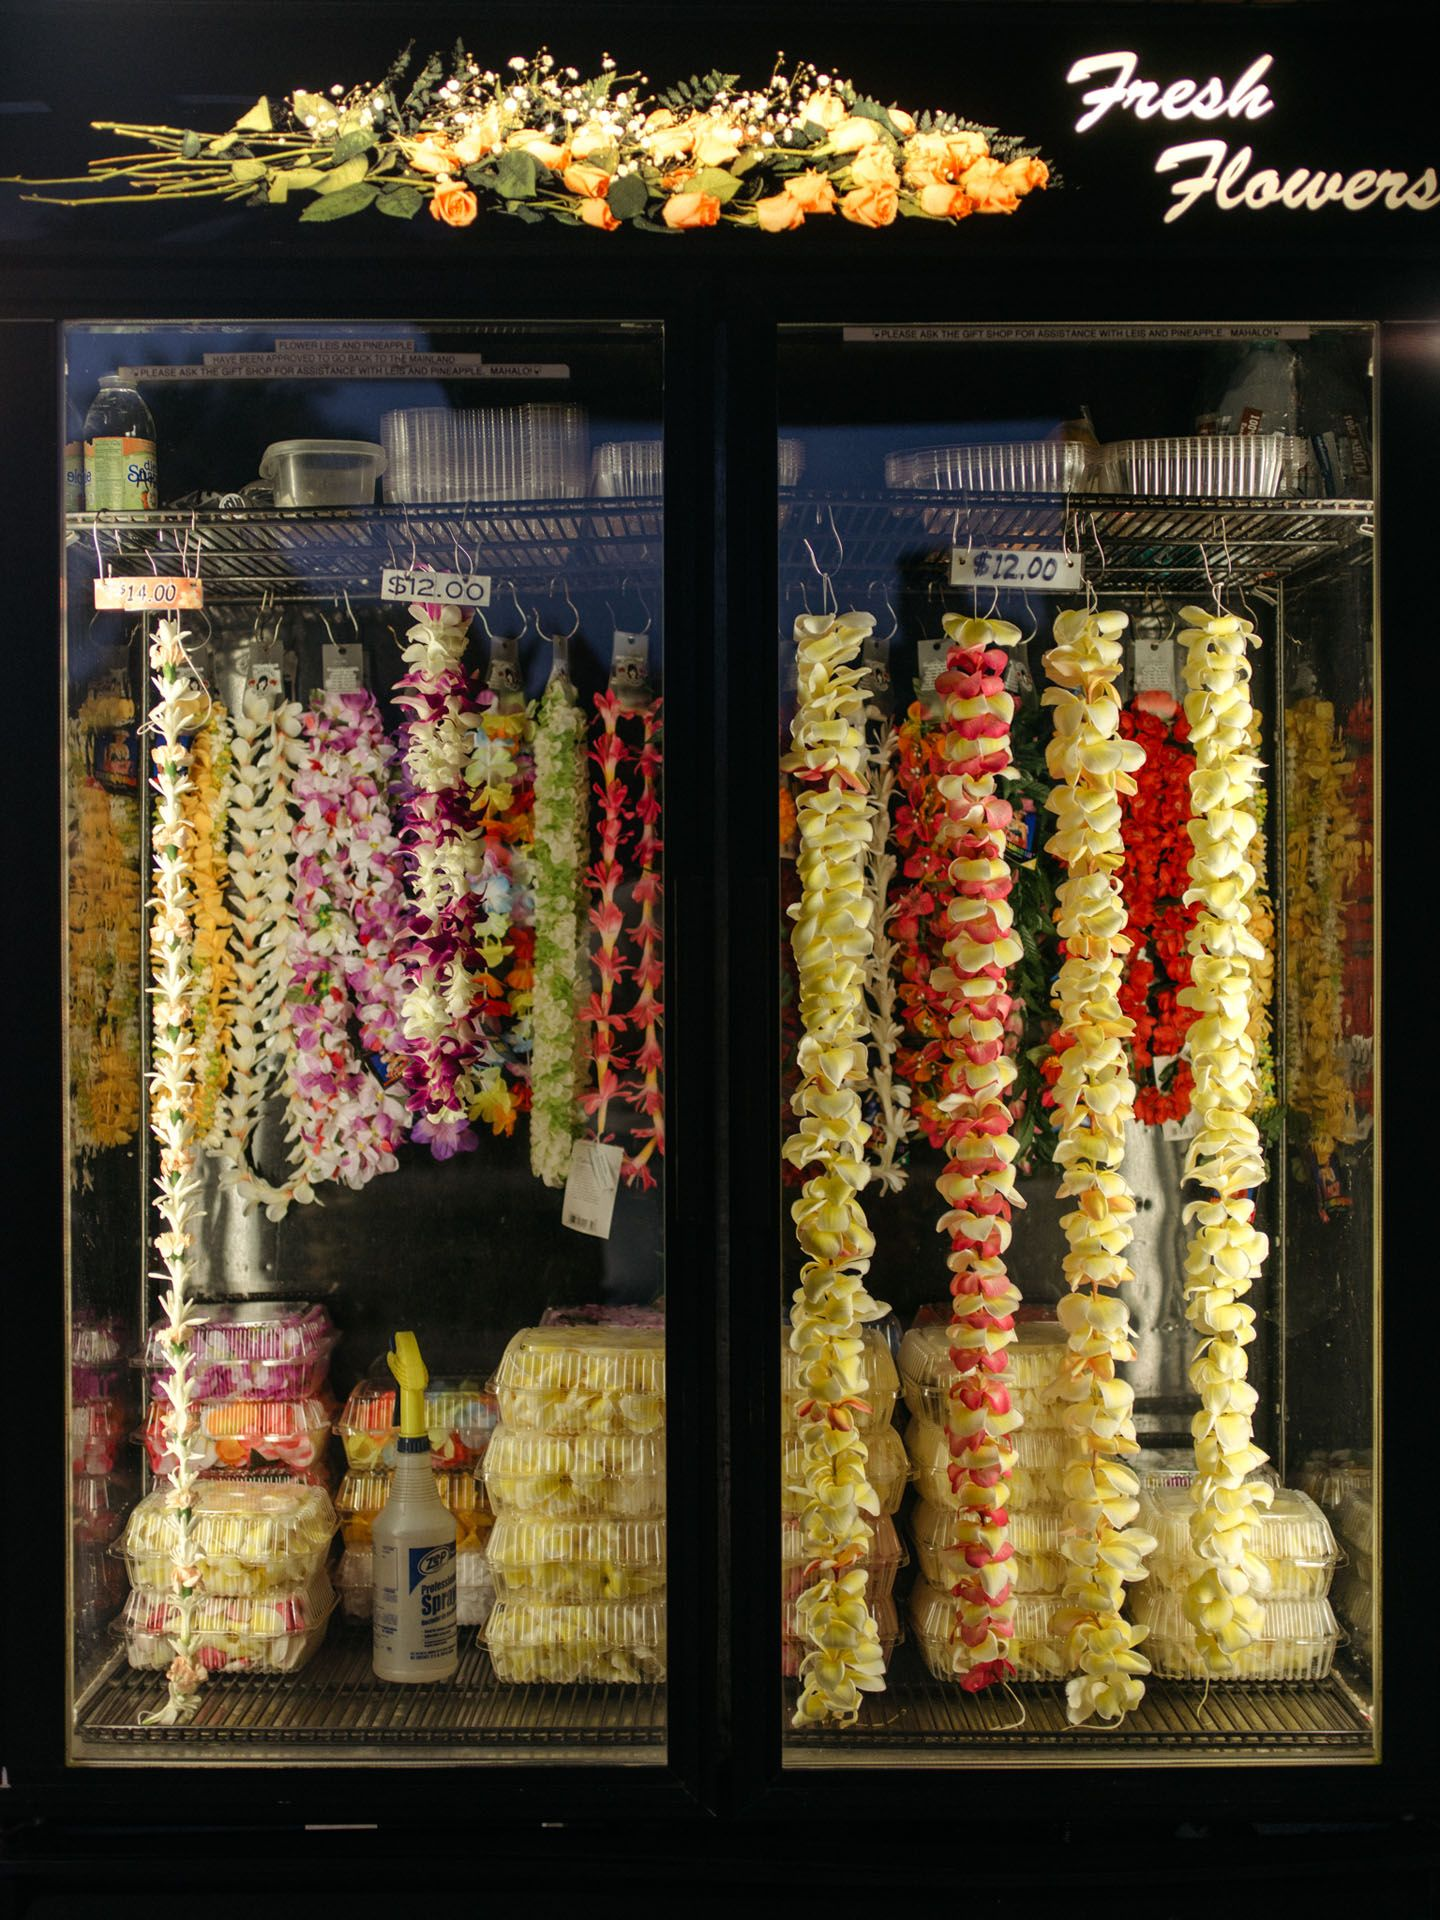 necklace of fresh flowers leis in fridge by Alexi Hobbs in Hawai'i for enRoute Magazine